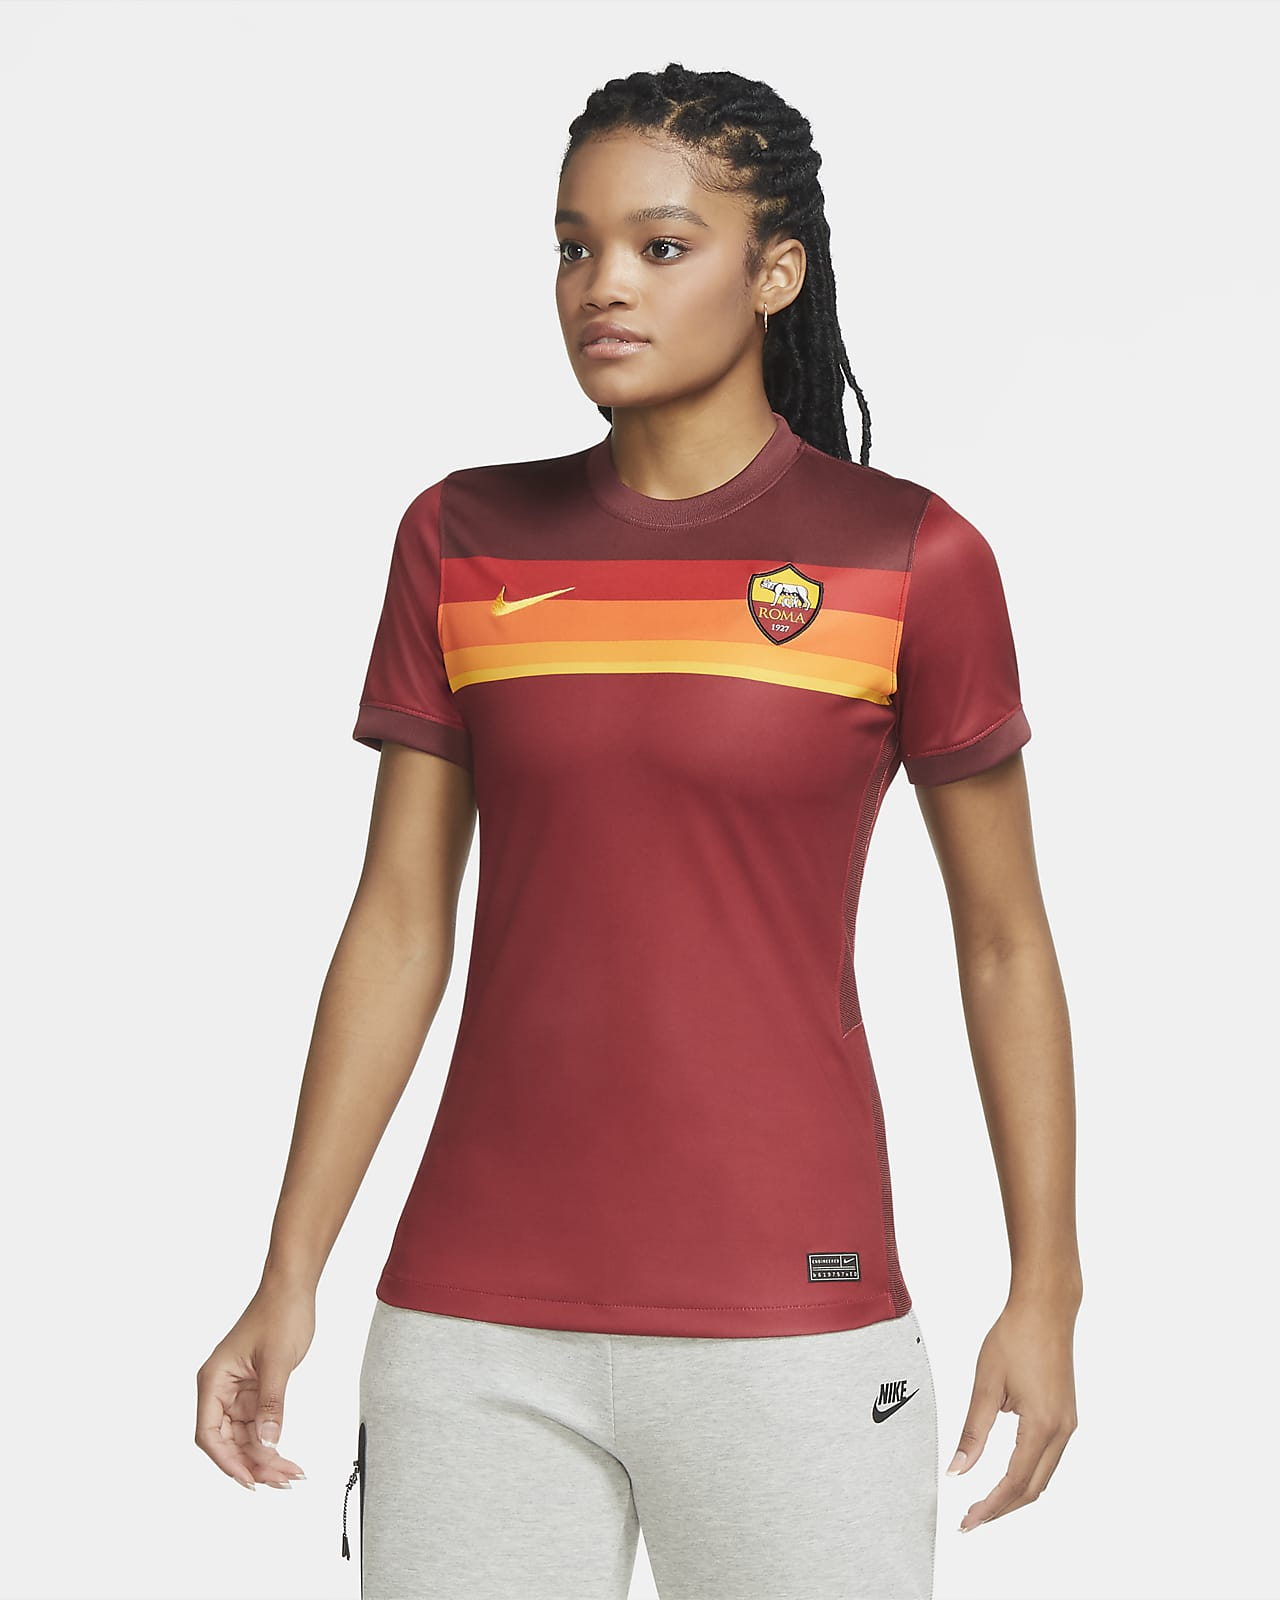 AS Roma 2020/21 Stadium Thuis Voetbalshirt voor dames